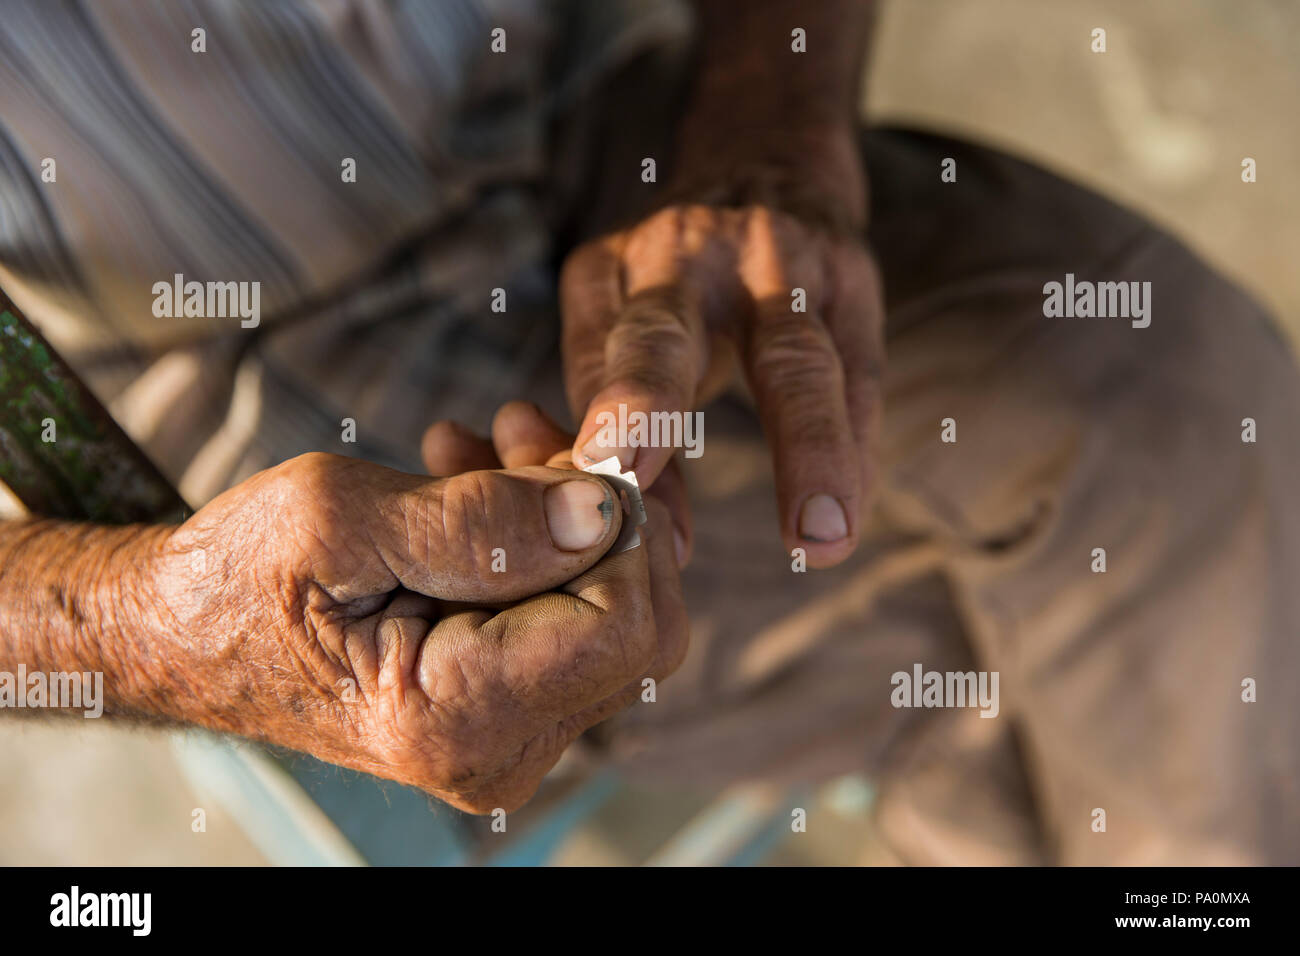 Close up shot of man cleaning fingernails with razor blade, Vinales, Pinar del Rio Province, Cuba - Stock Image